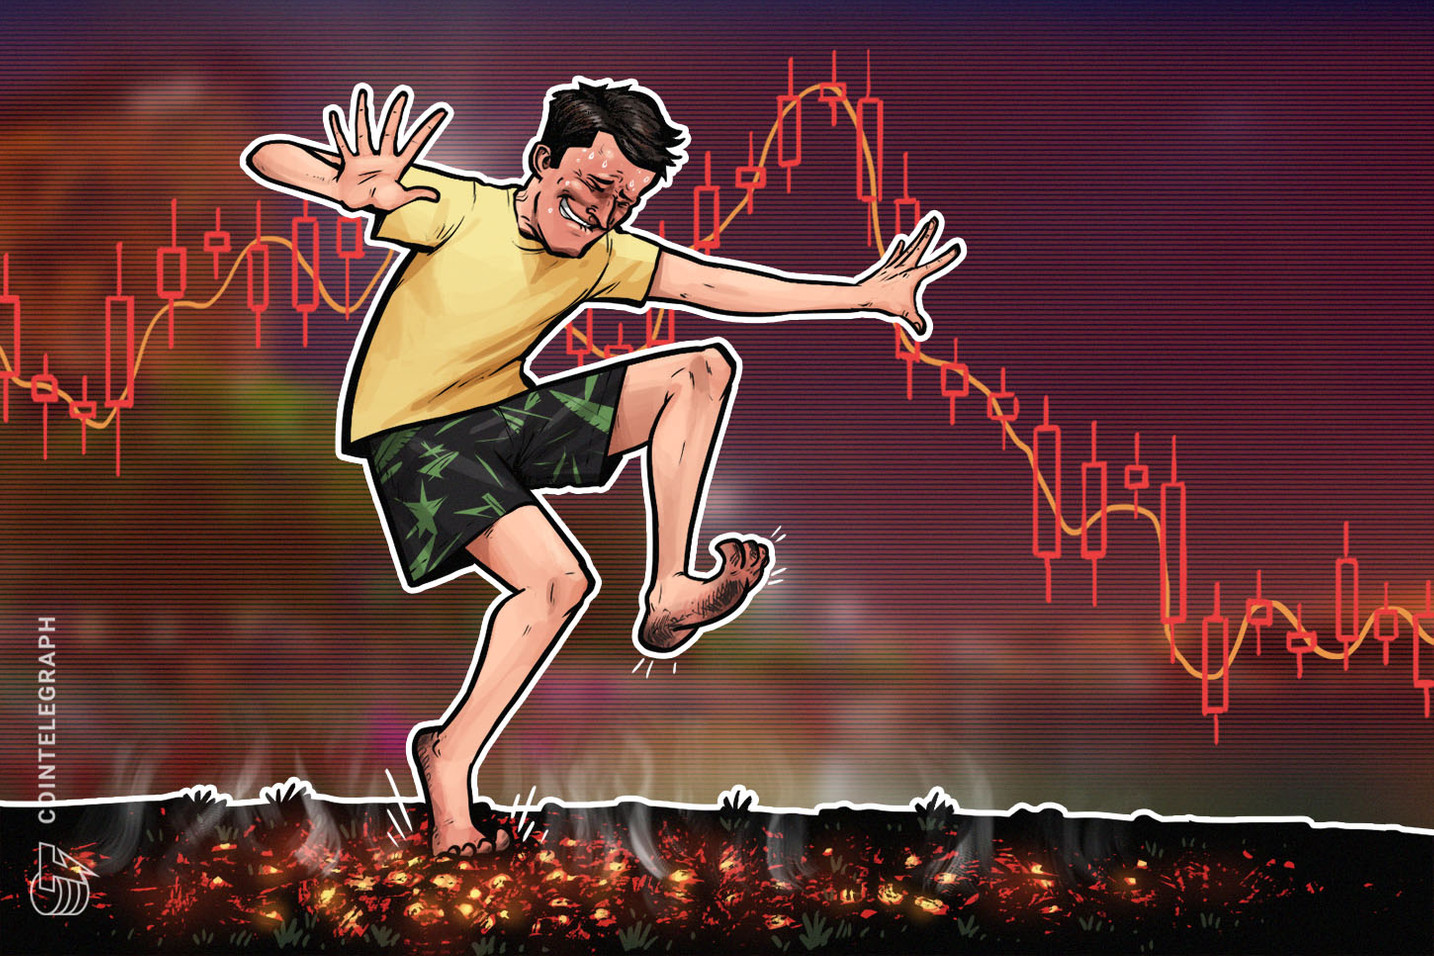 Crypto Markets Drops as Bitcoin Fails to Hold $5,300 Support, Stocks Hit All-Time Highs